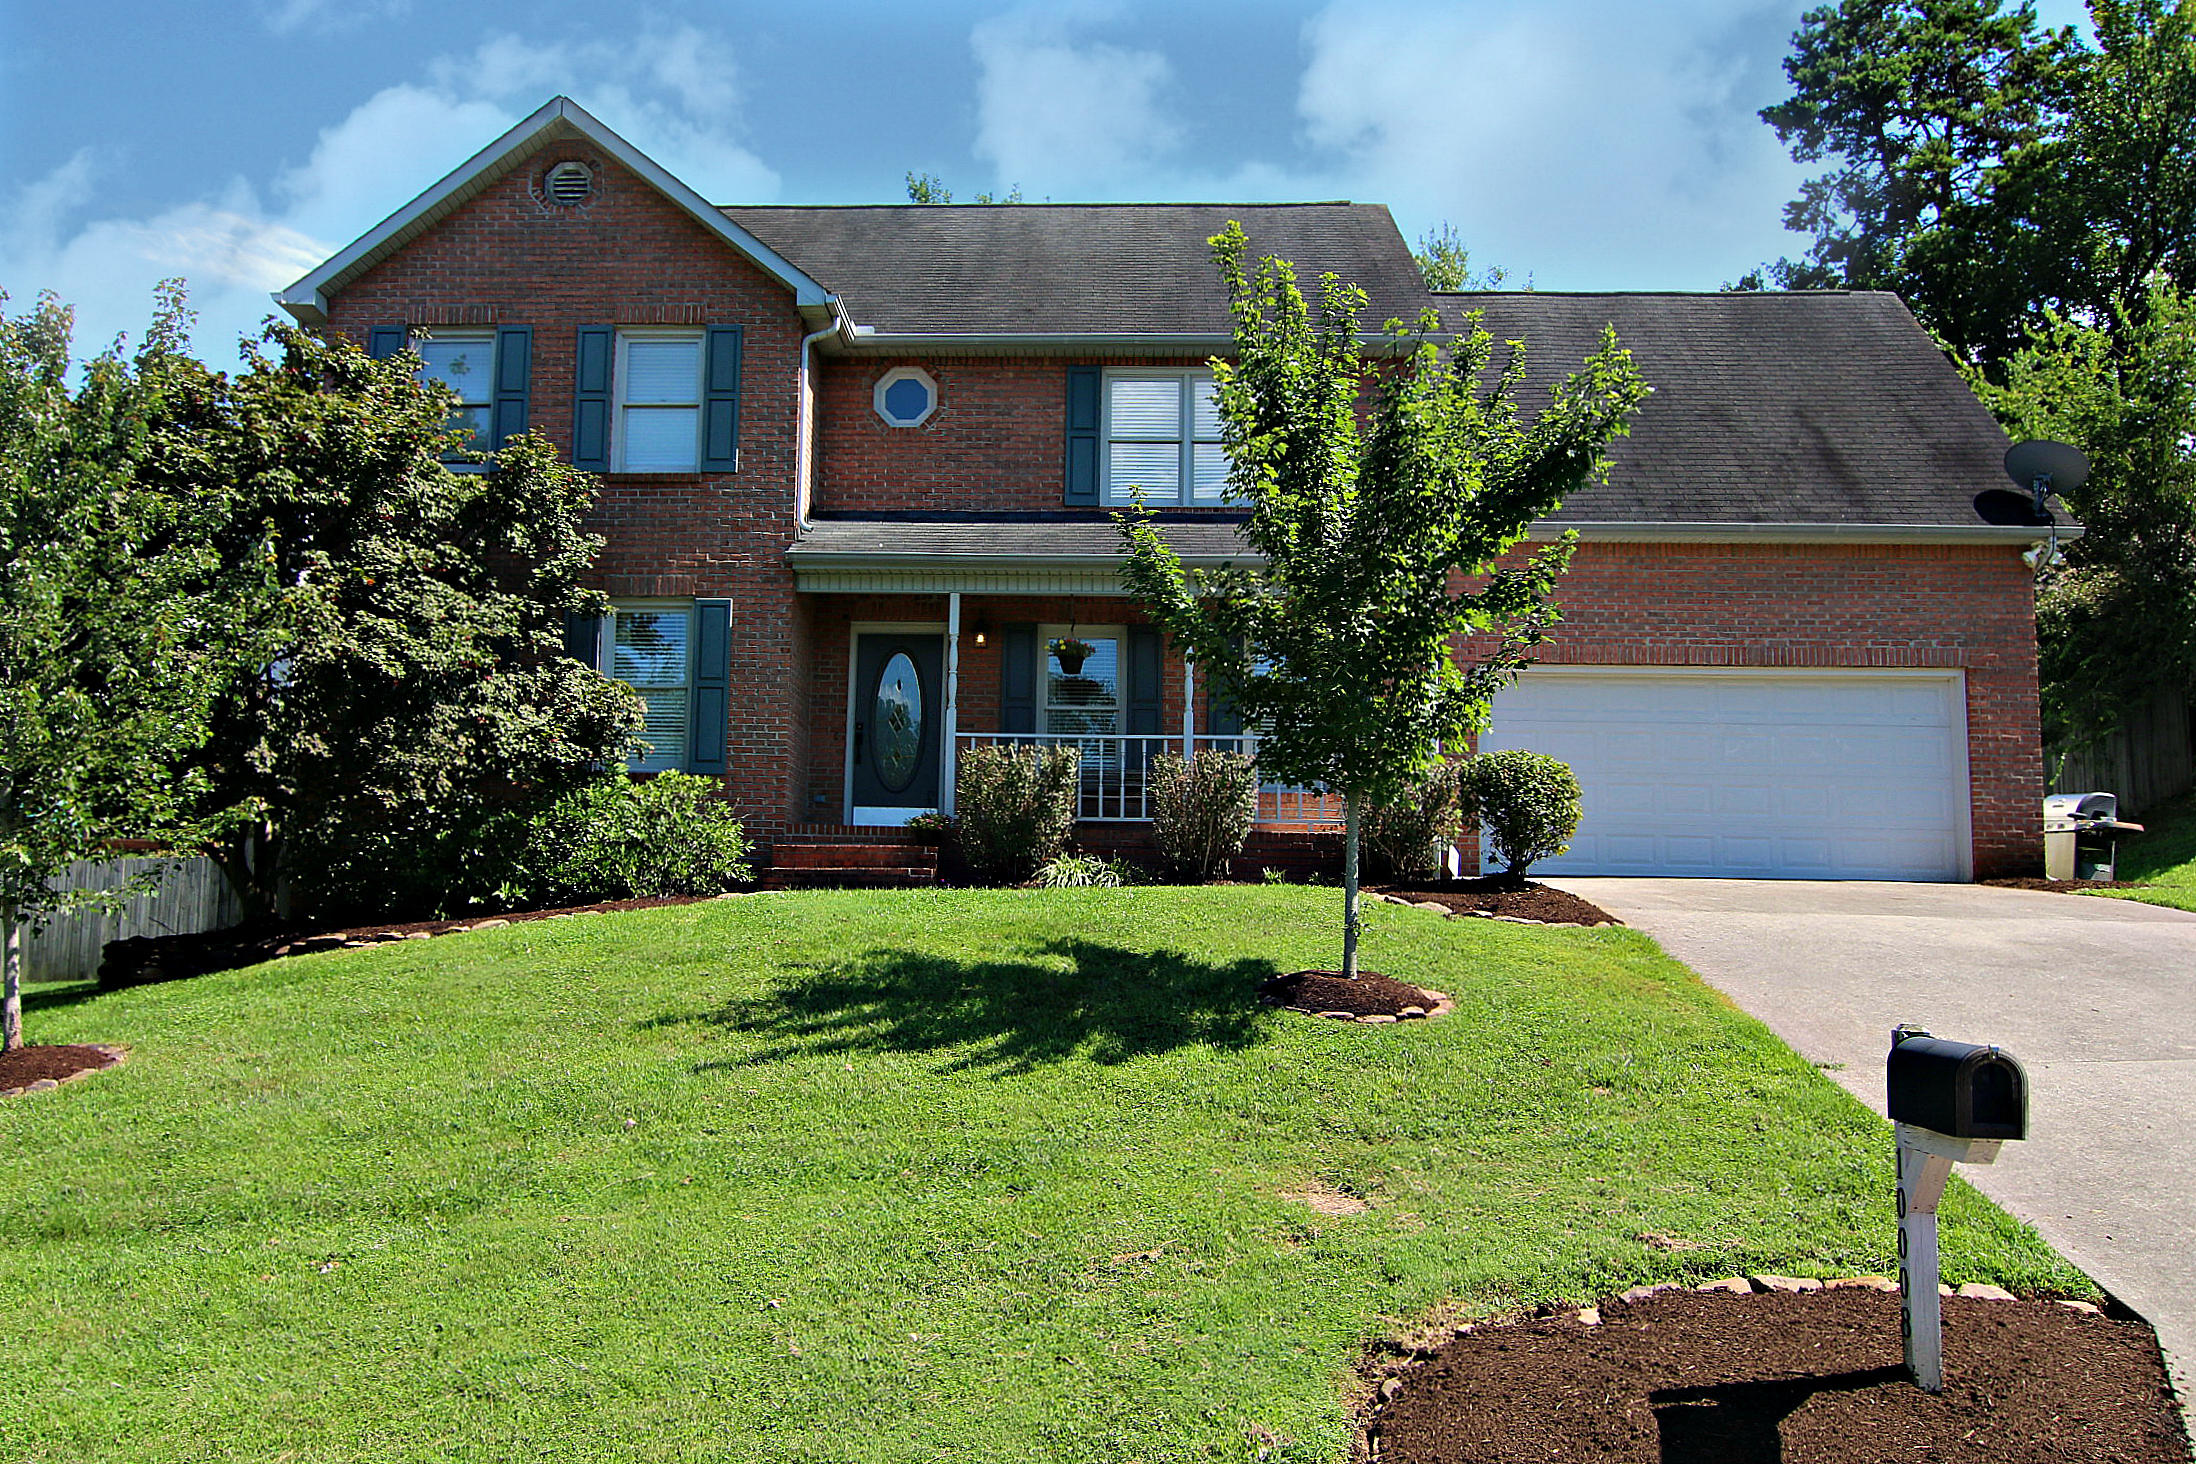 10008 DELLE MEADE DRIVE, KNOXVILLE, TN 37931